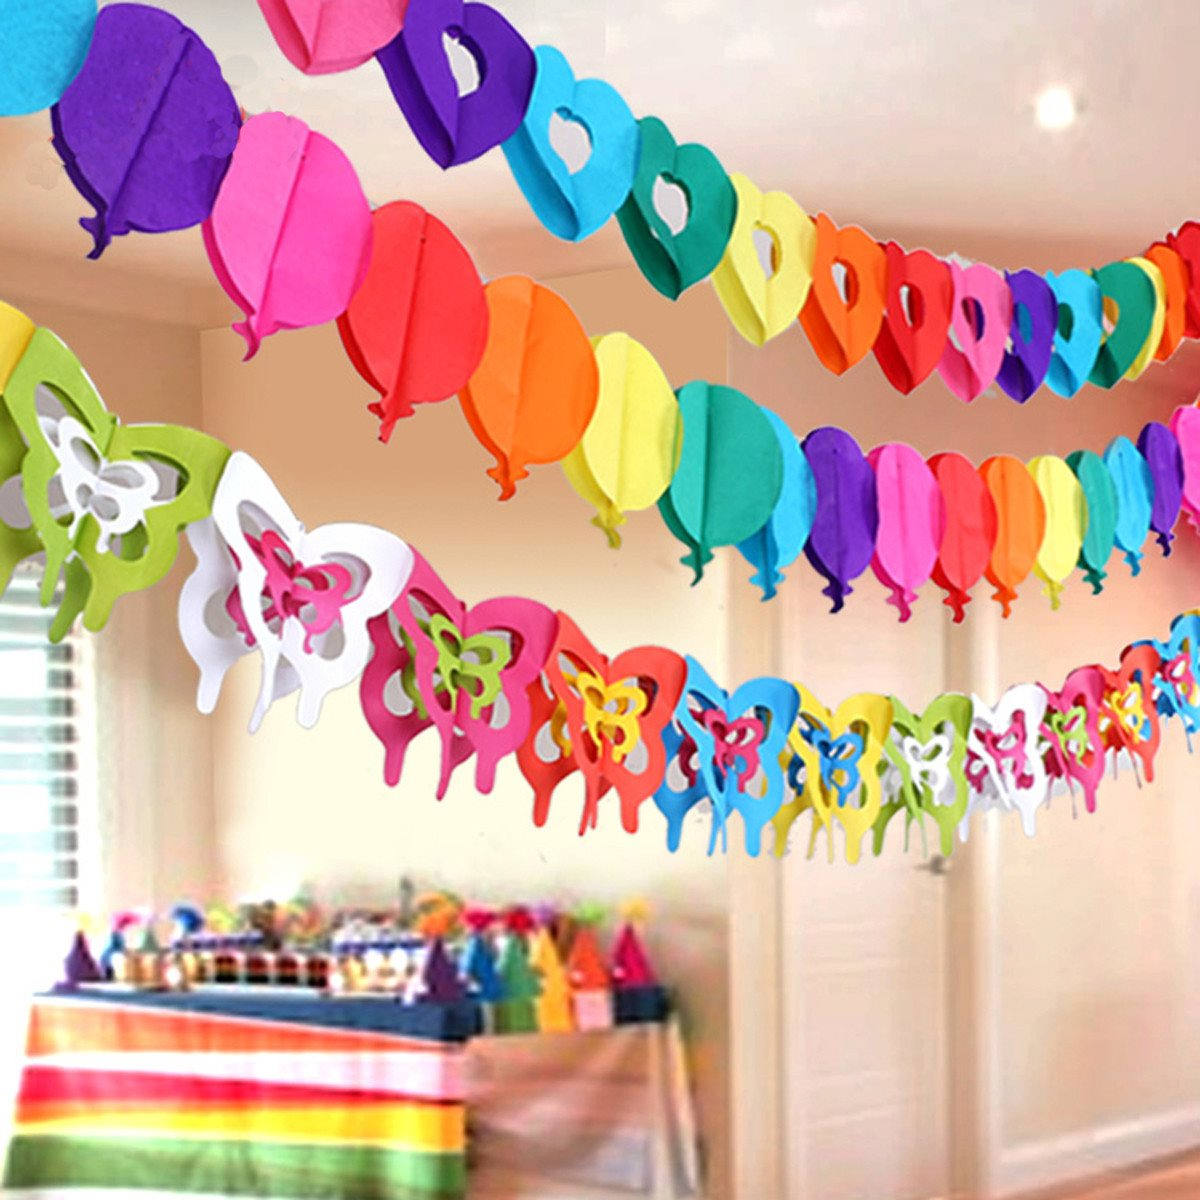 banner design birthday party ; Rainbow-Colors-Hanging-Paper-Chain-Heart-Toy-Car-Banner-Birthday-Party-Design-Decorative-Crafts-Events-Party